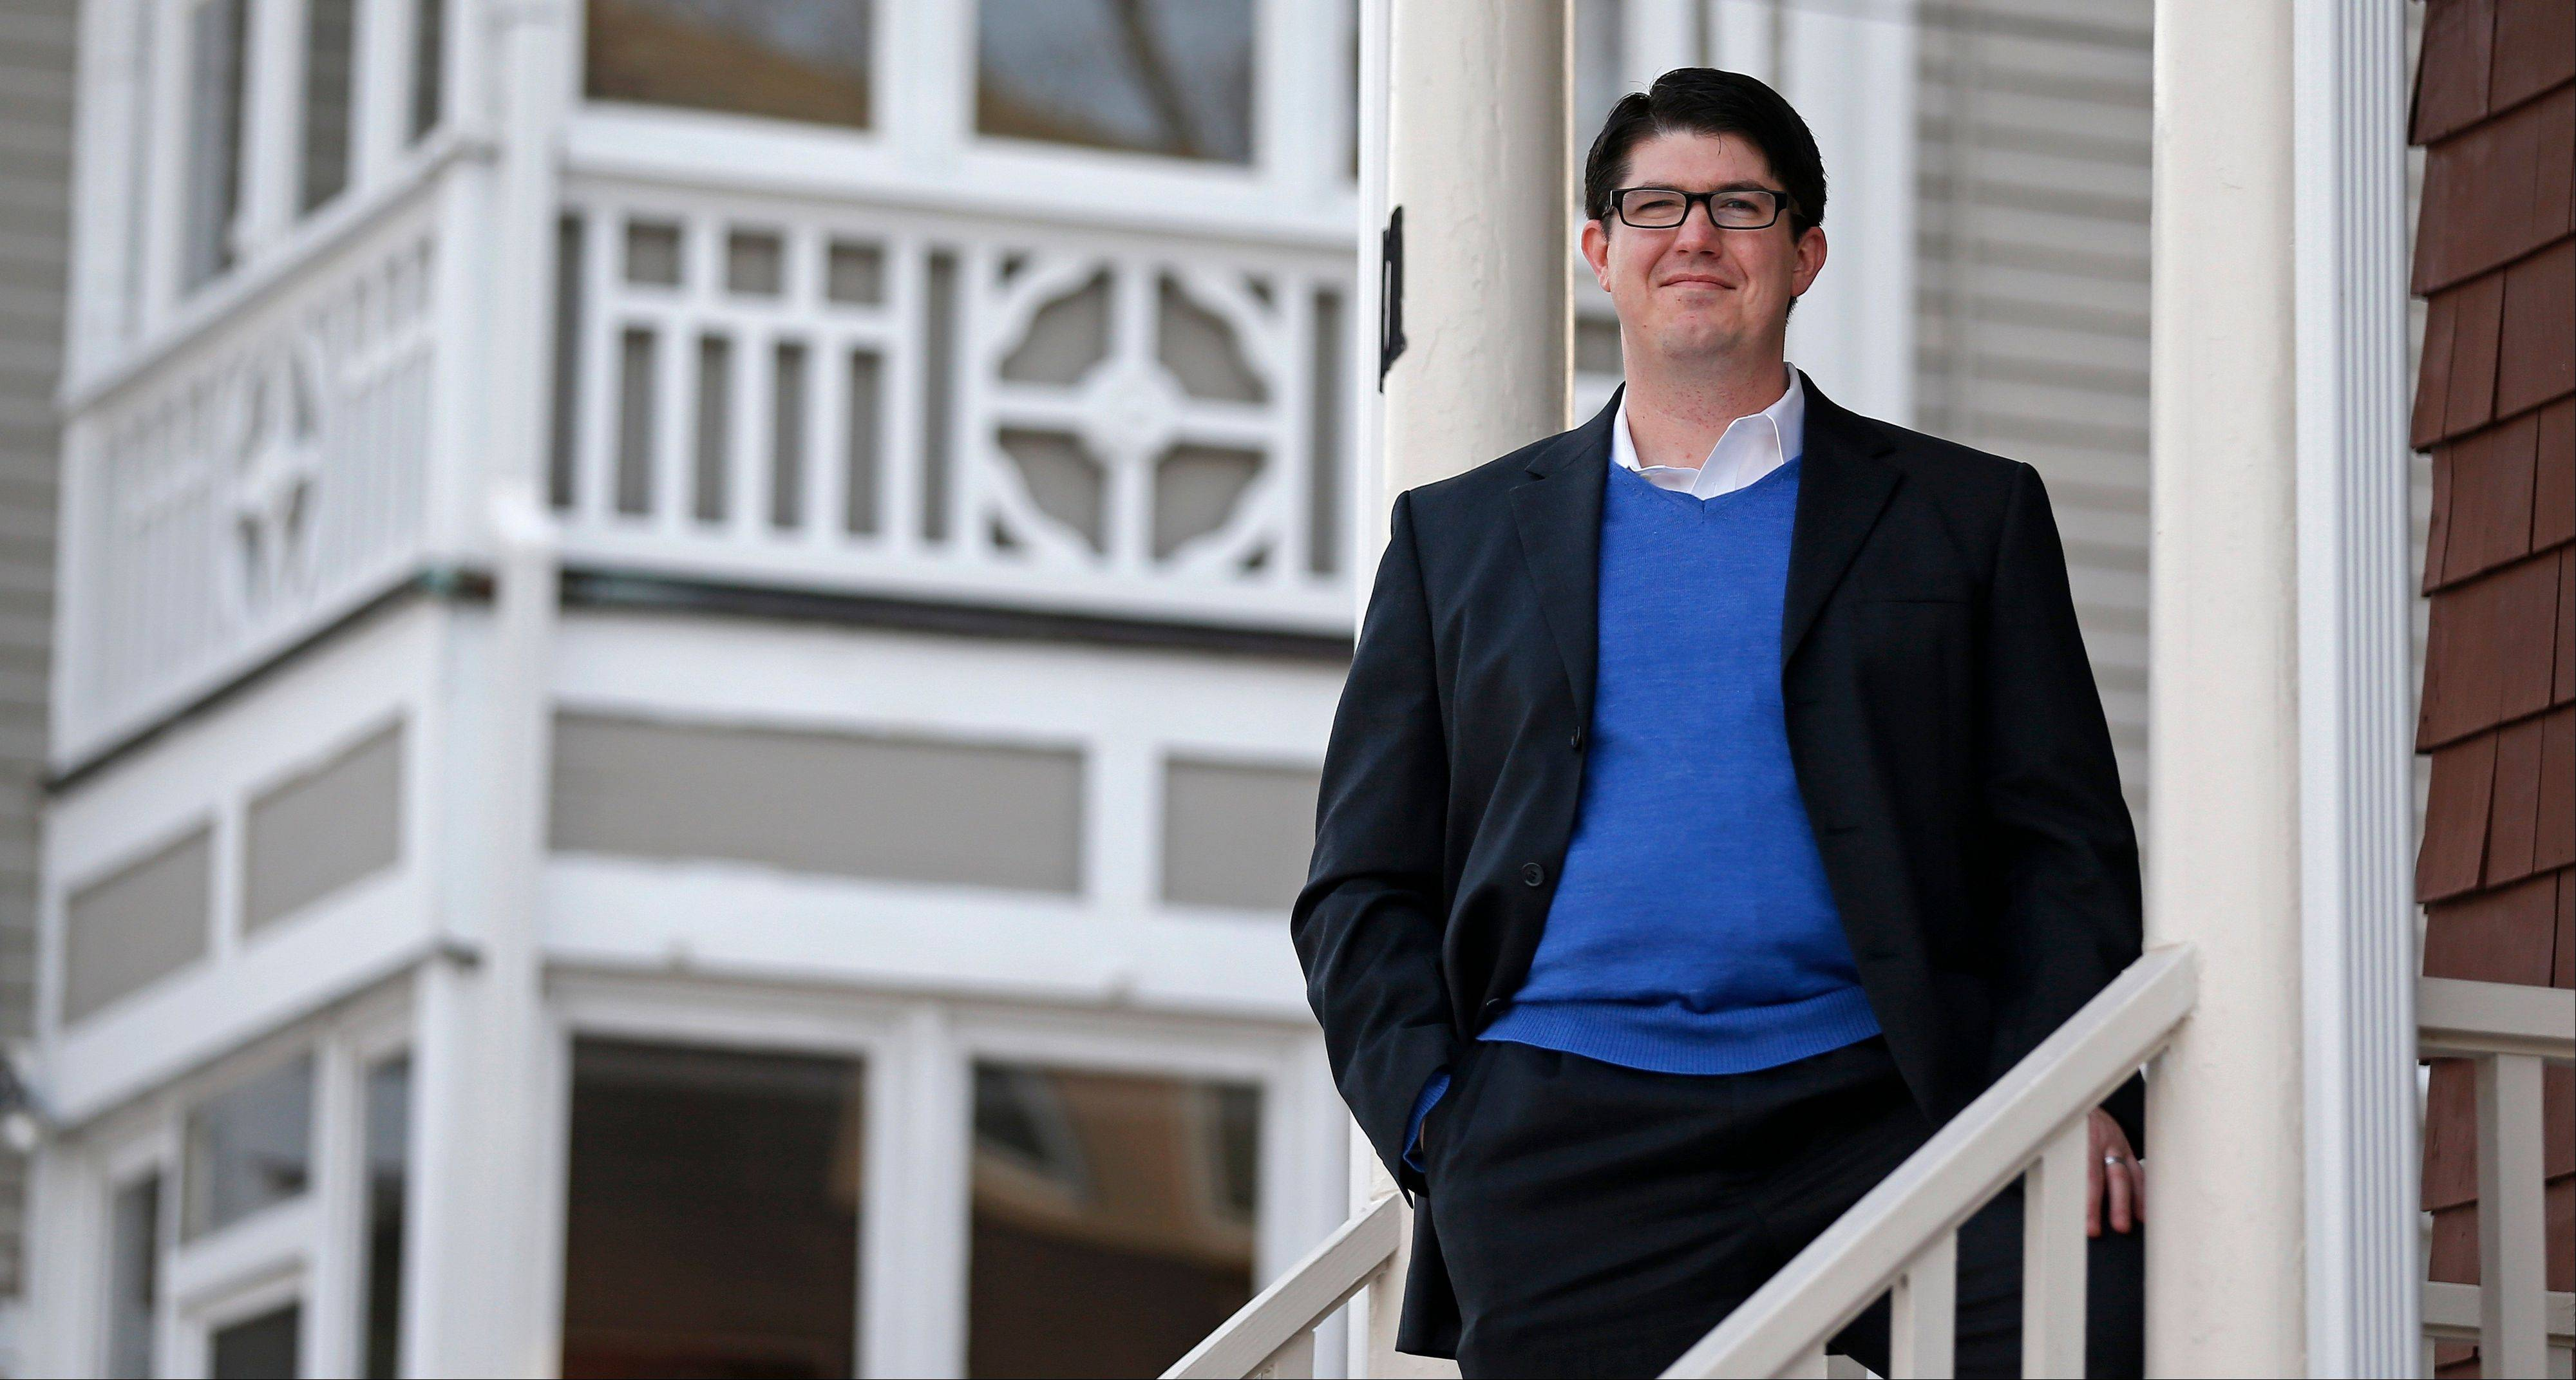 Business developer Robert Schultz is a Boston-area startup business consultant who got his MBA in 2008, when the economy was tanking. Yet he was able to find coverage when he graduated and hang on to his insurance through job changes since.